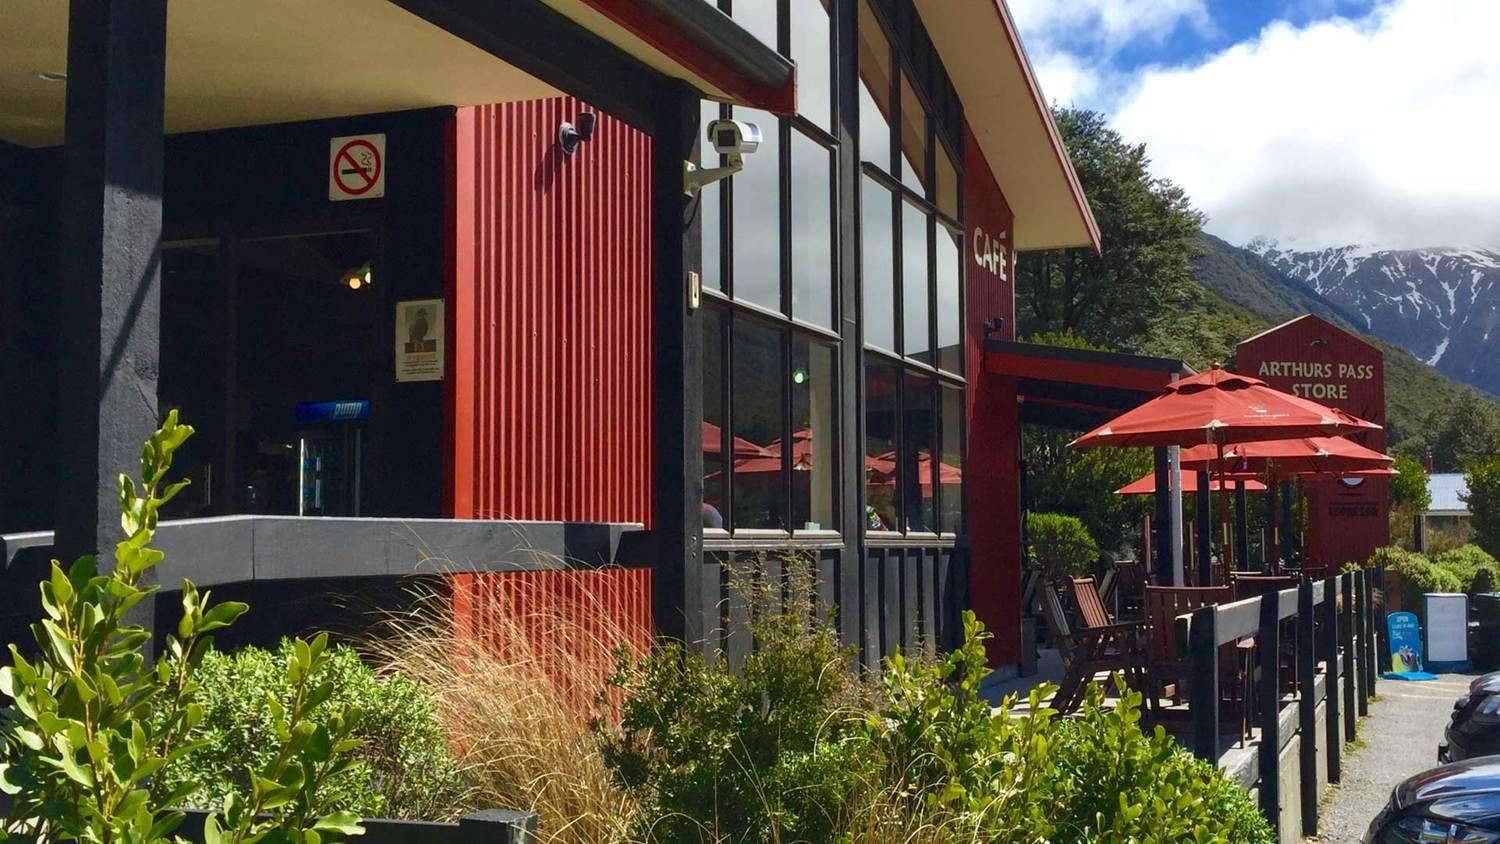 Arthur's Pass Cafe & Store